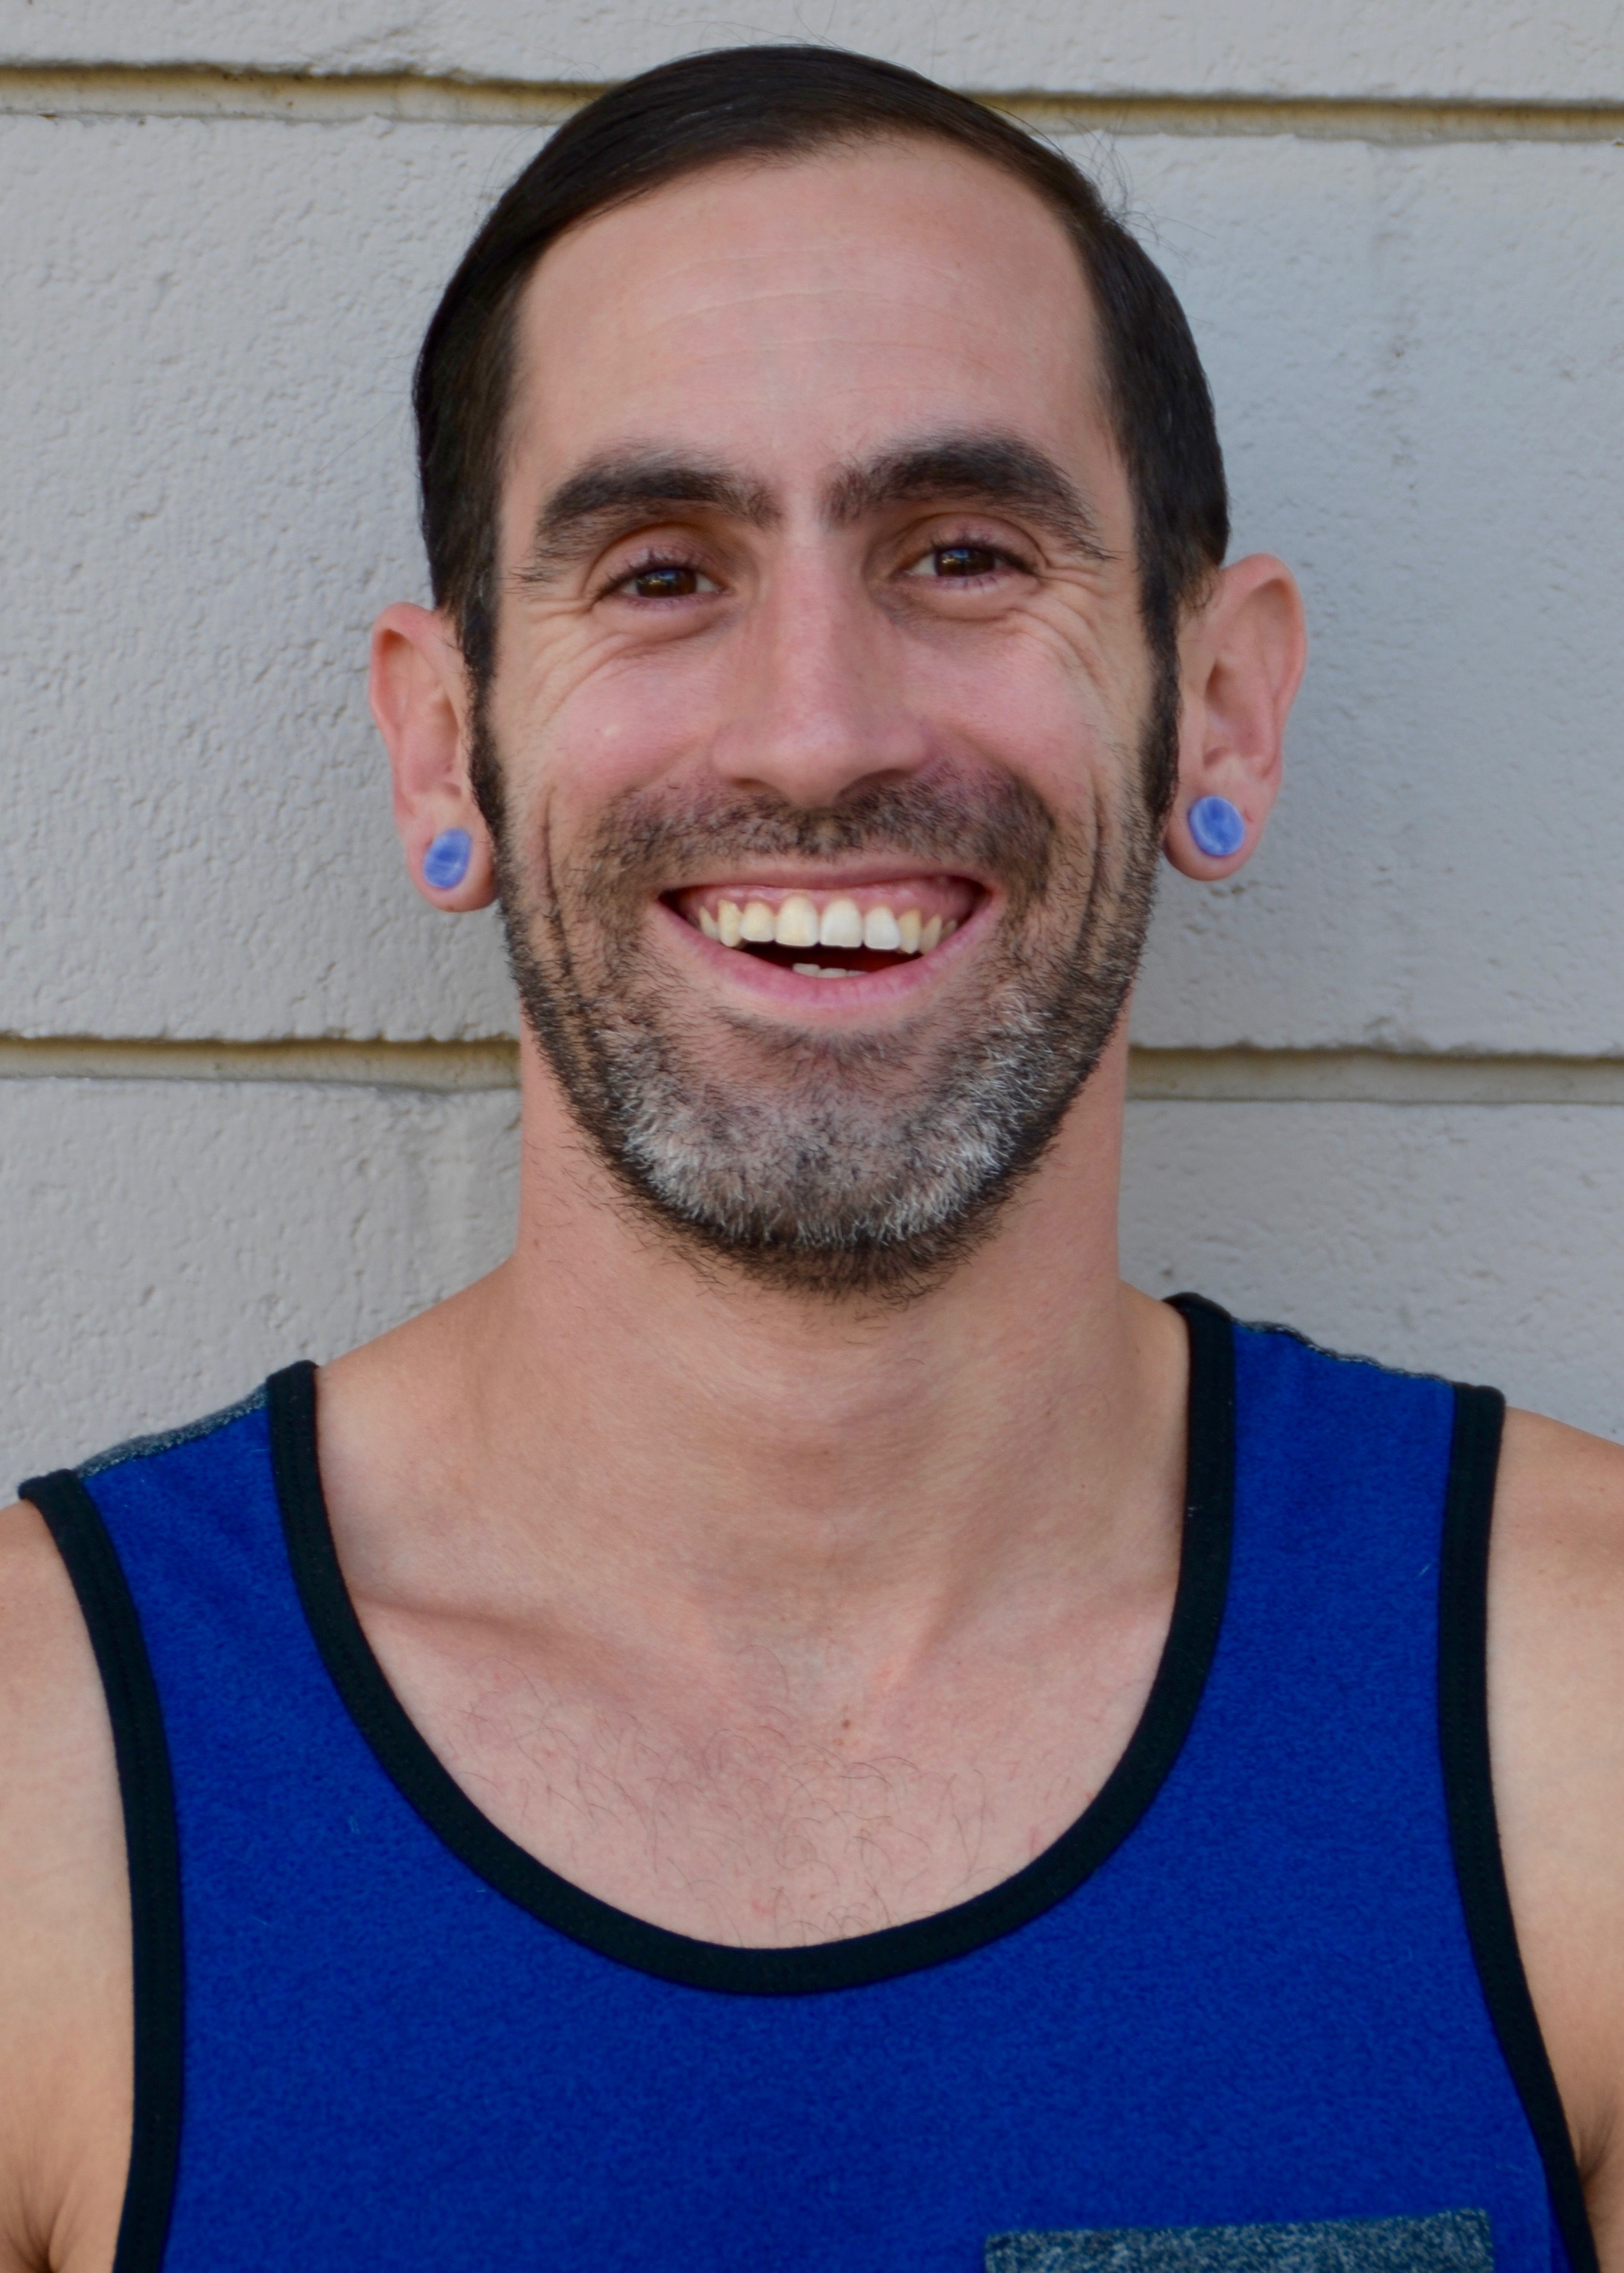 Santa Barbara Dance Arts Instructor, Dance Class Teacher